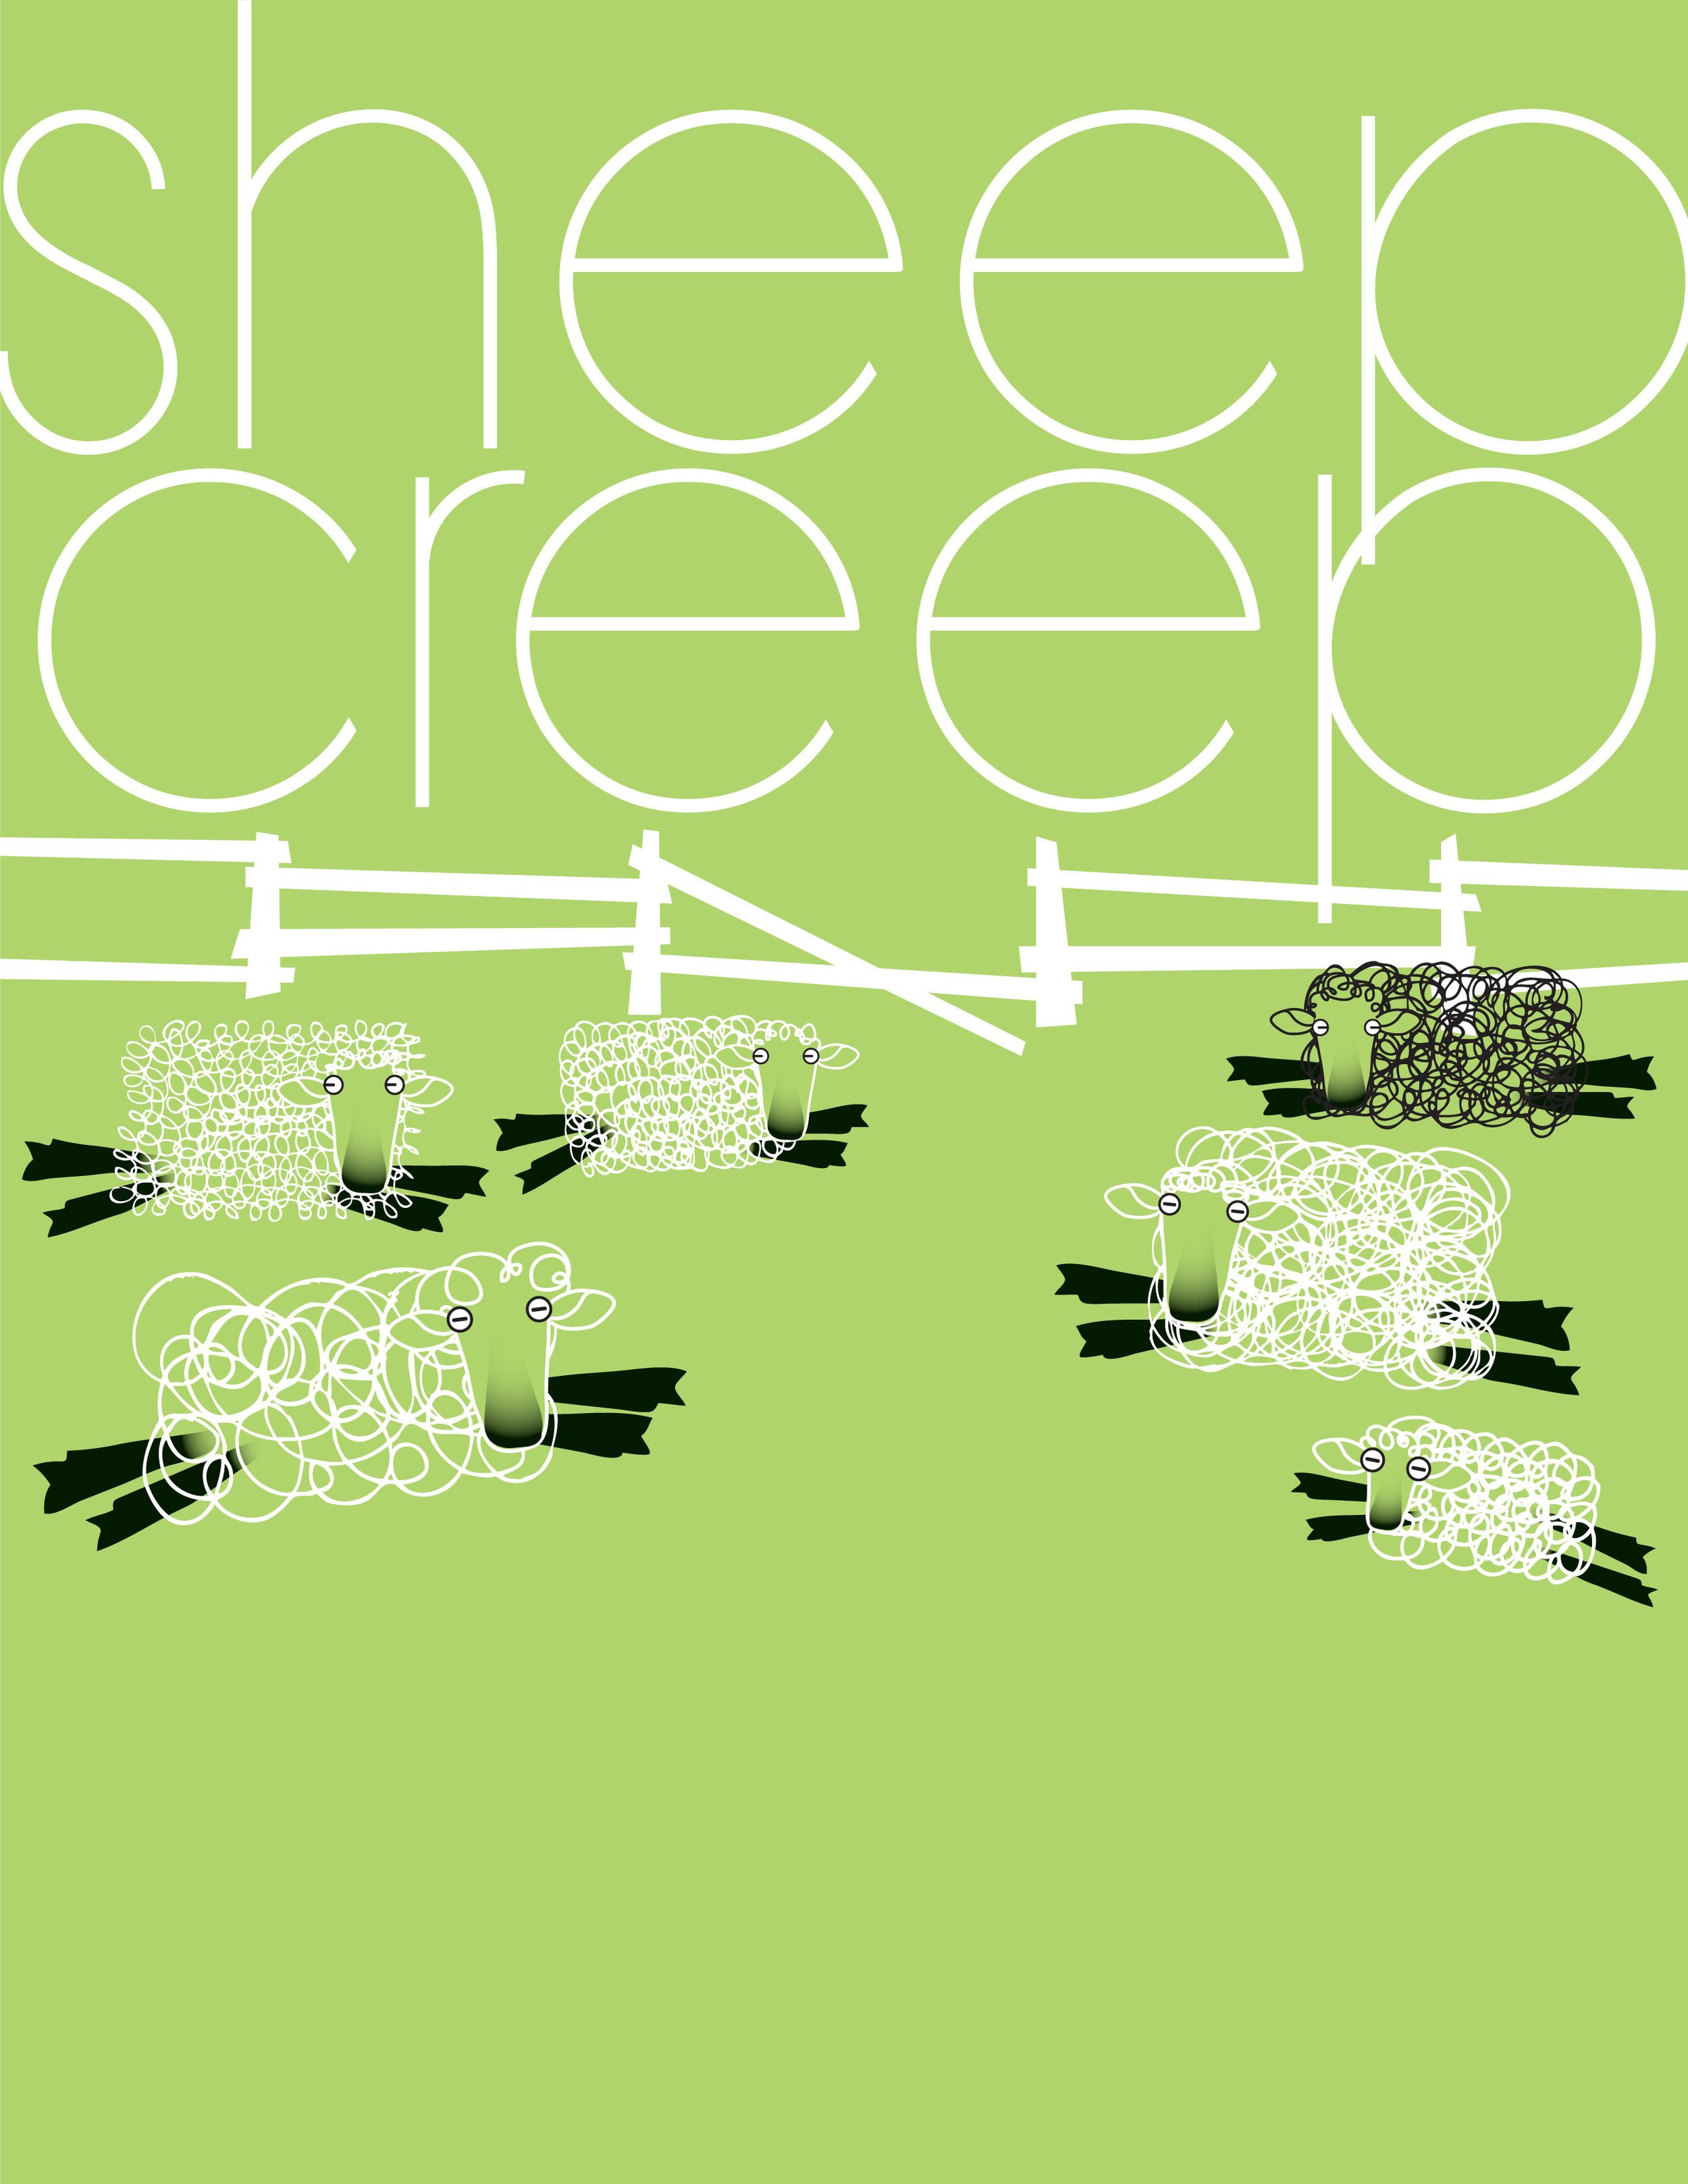 Sheep Sleep Book 2-4.jpg